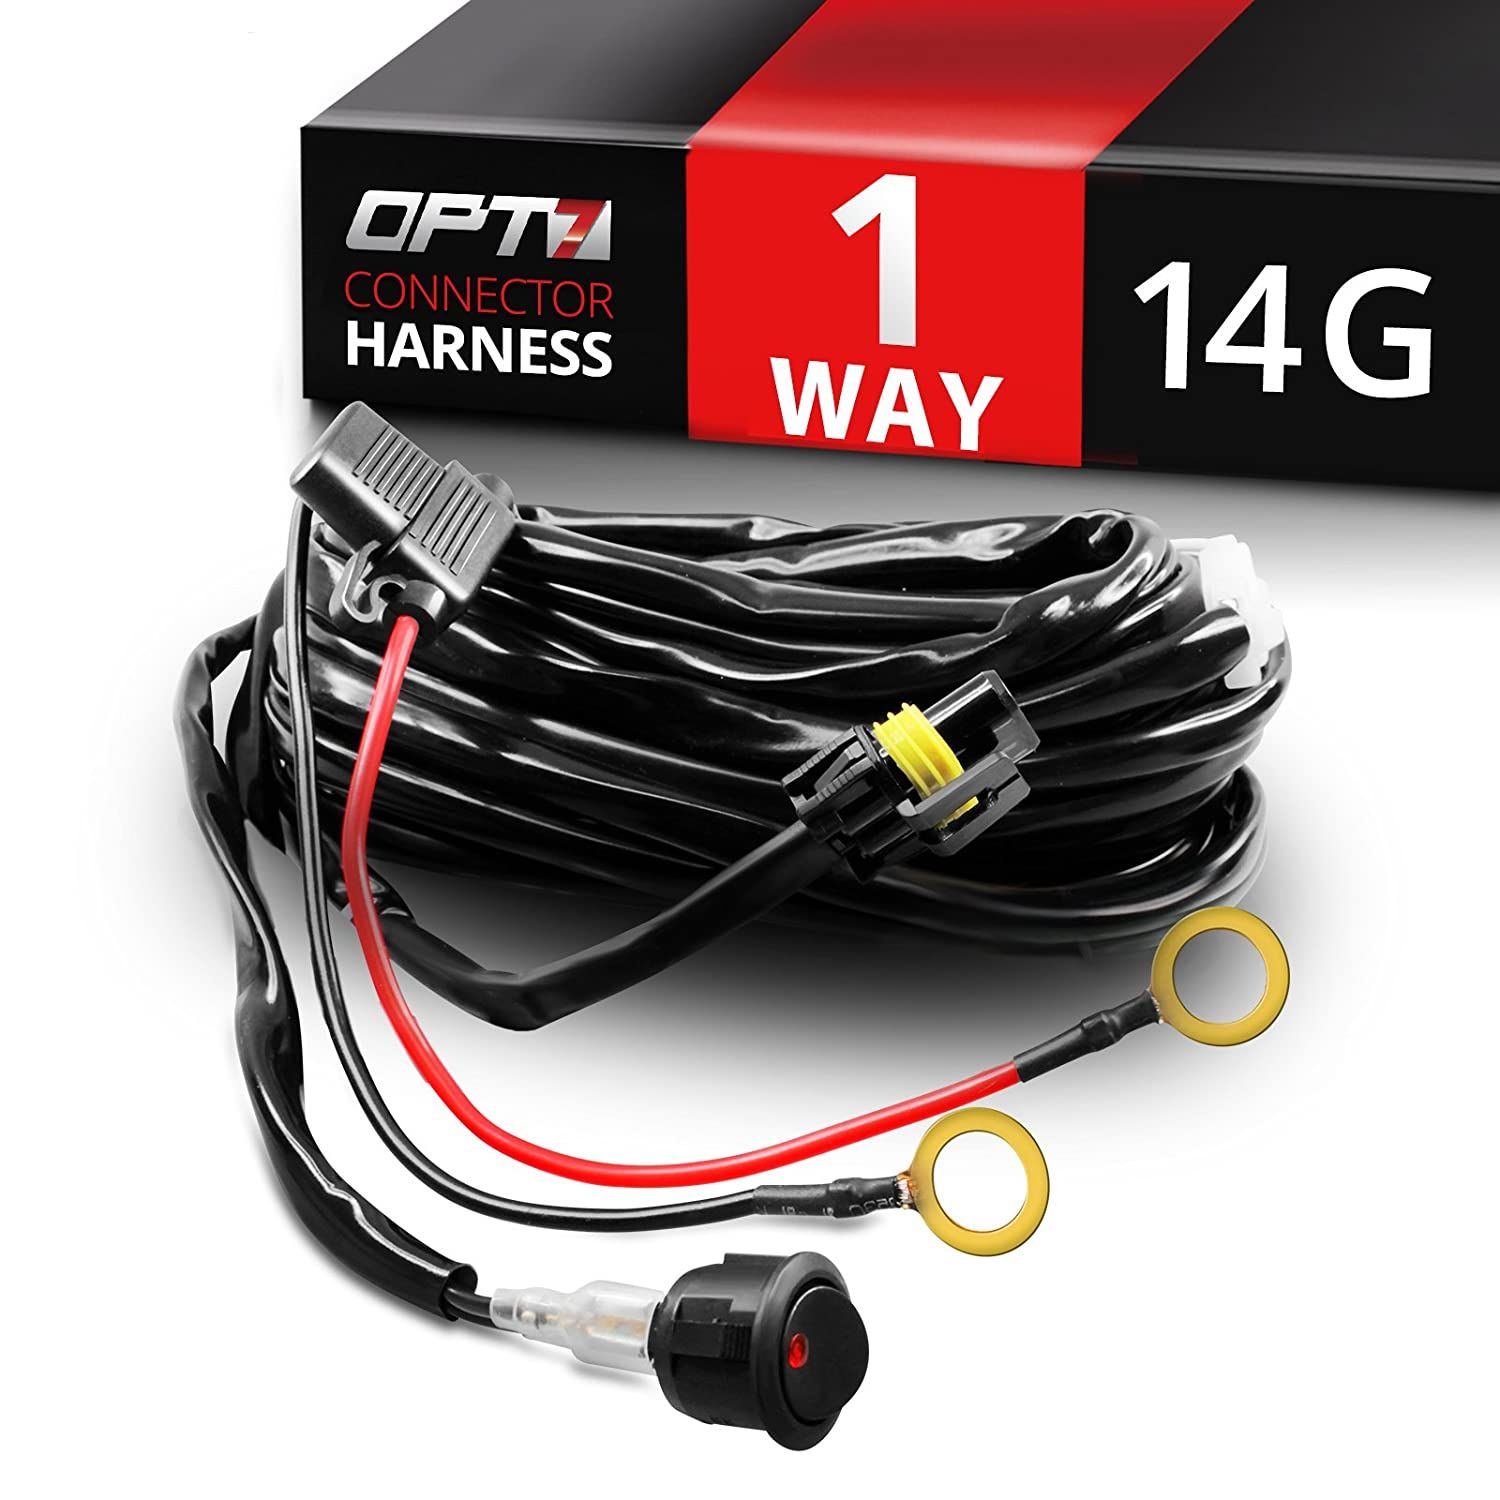 71vzZ28pwbL._SL1500_ amazon com opt7 led light bar wiring harness 14 gauge 380w wiring off road wiring harness at readyjetset.co